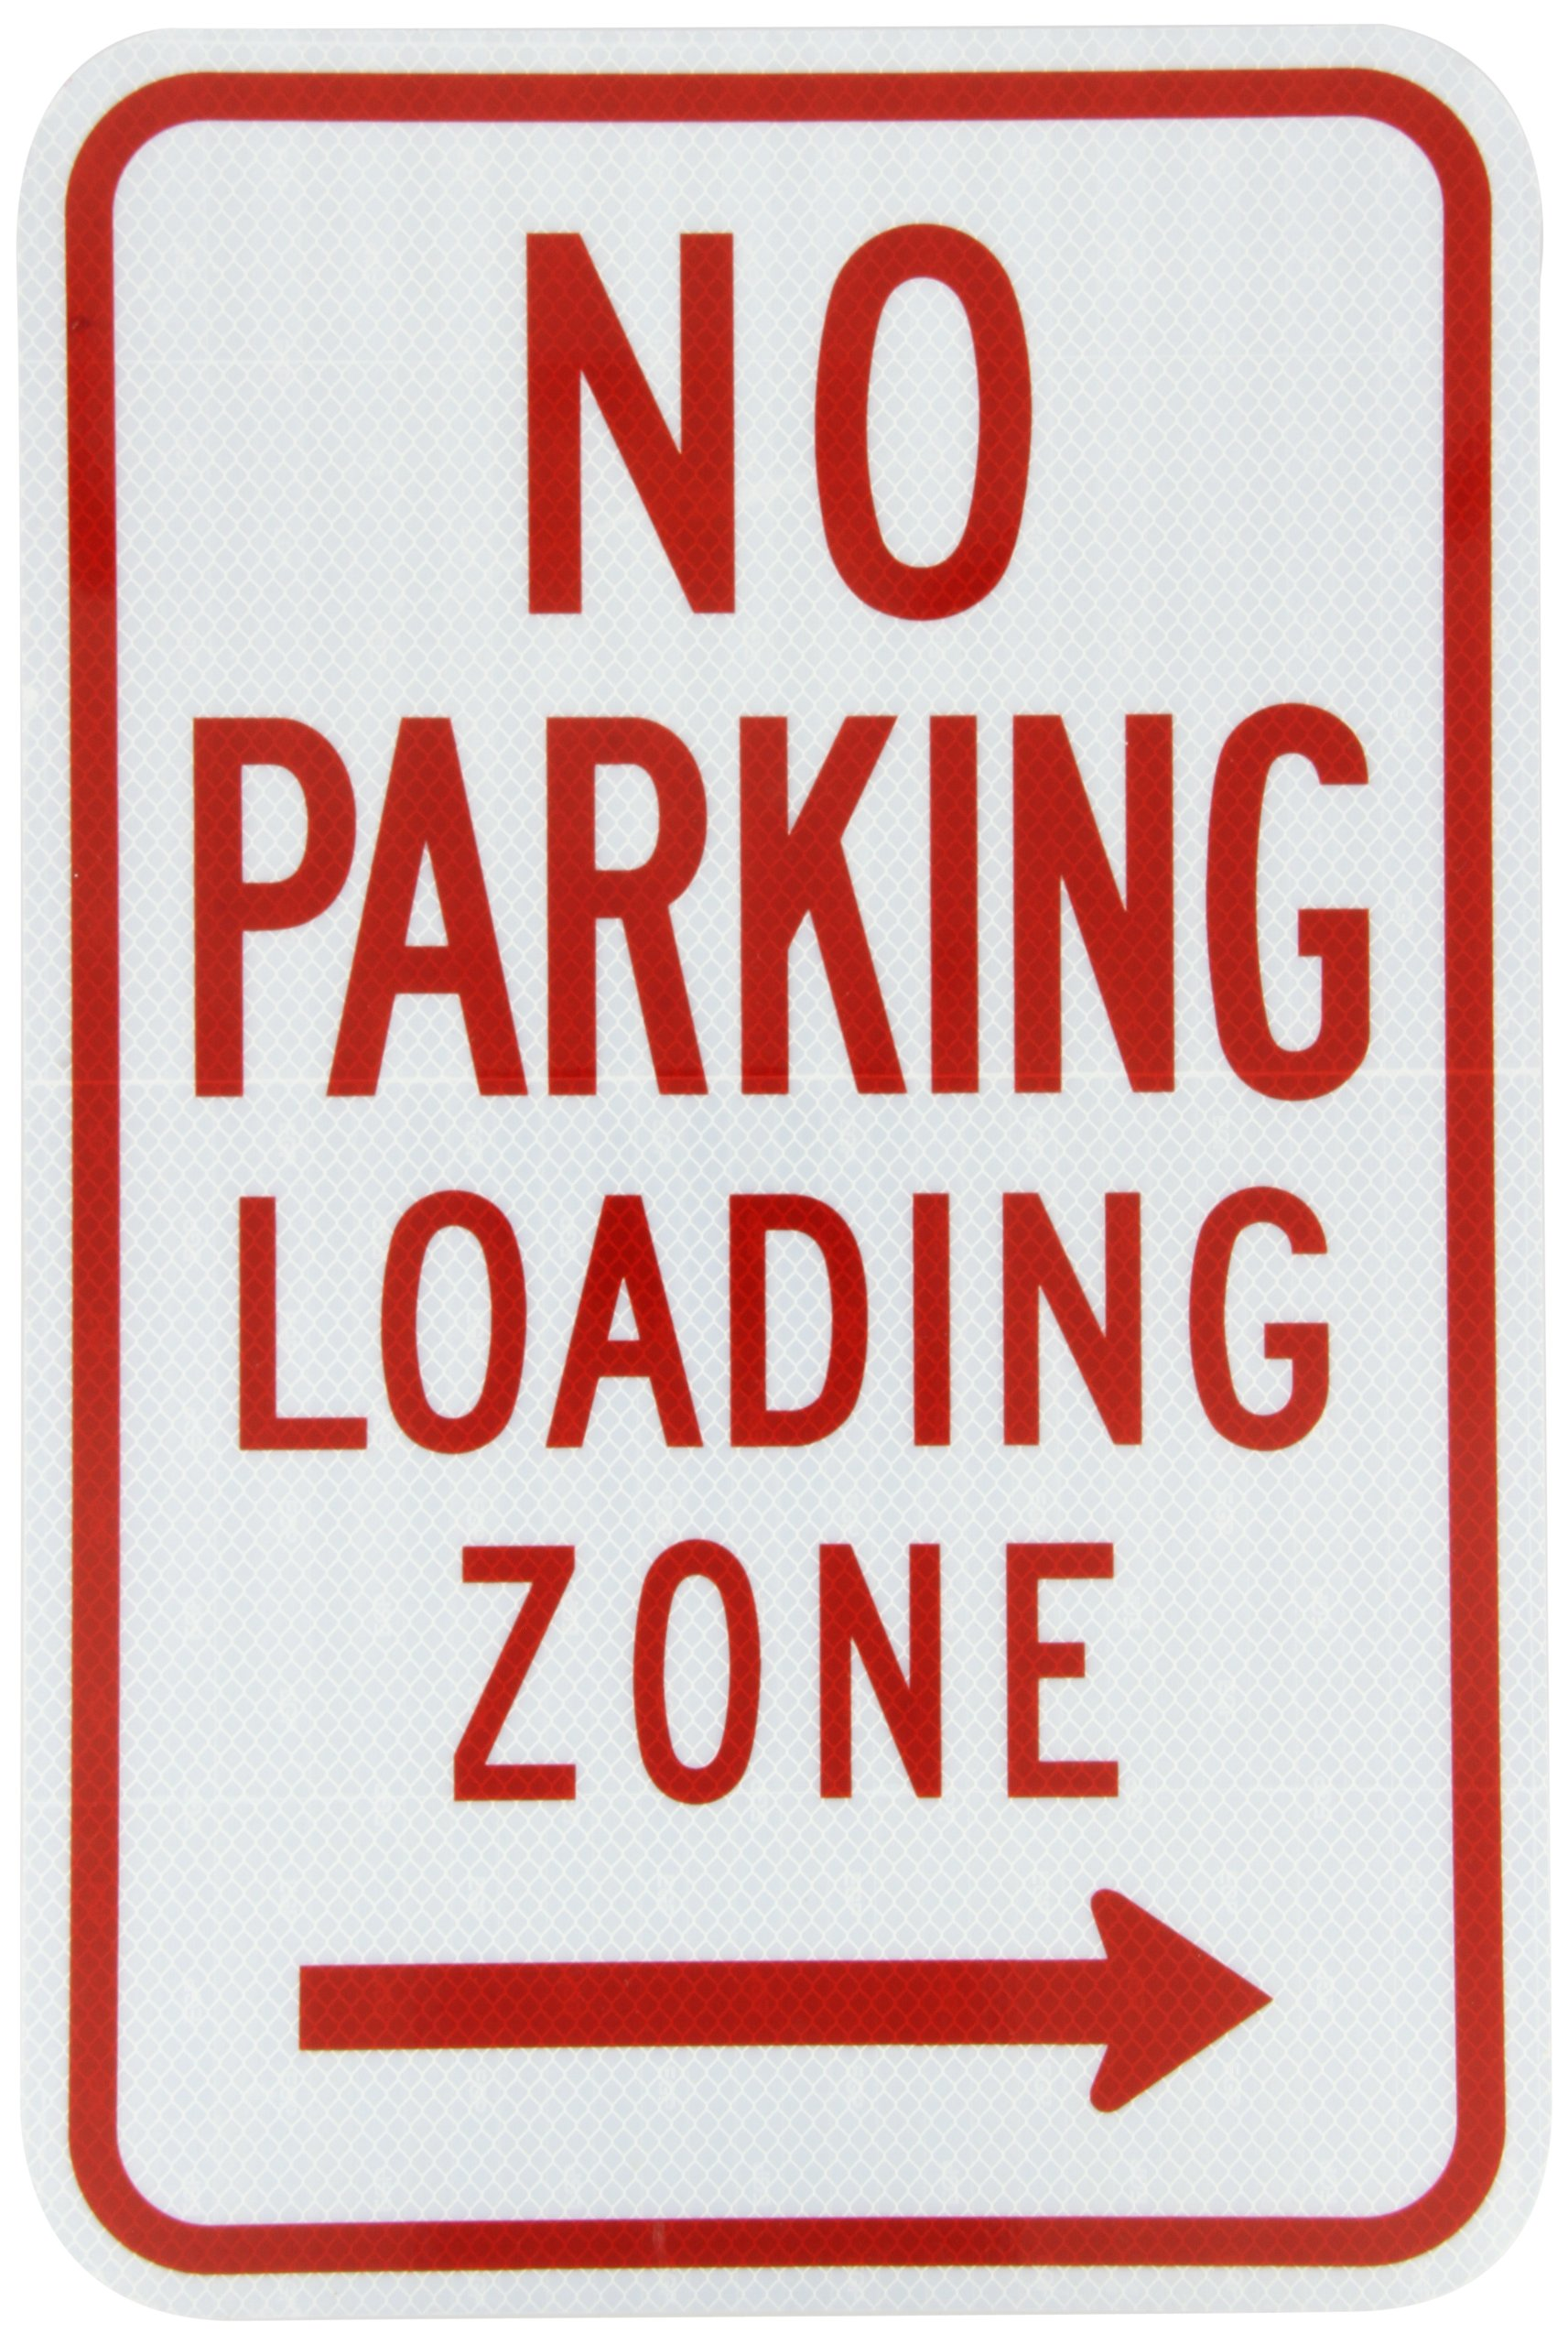 ZING 2281 Eco Parking Sign, No Parking Loading Zone, 18Hx12W, Engineer Grade Prismatic, Recycled Aluminum